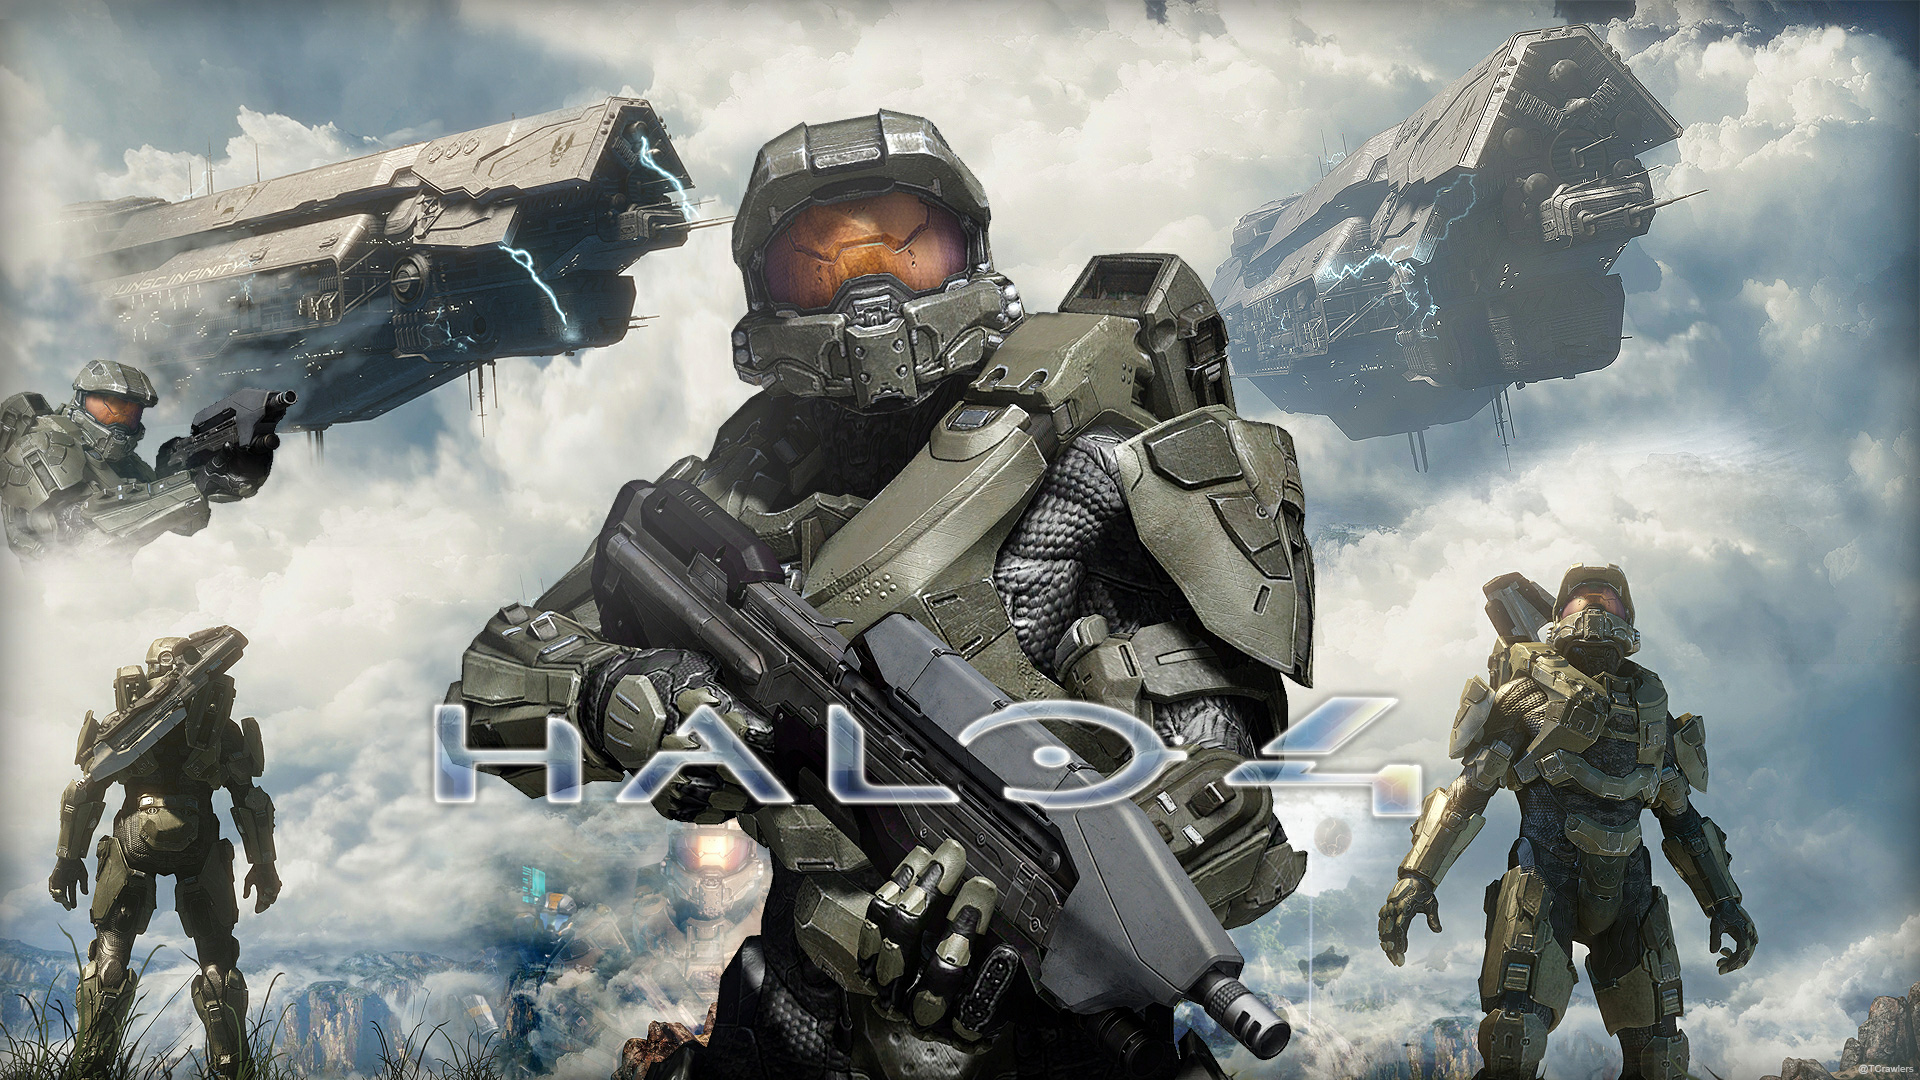 Halo Wallpaper Hd, Halo HD Wallpapers Free Download - 41+ Best Pics